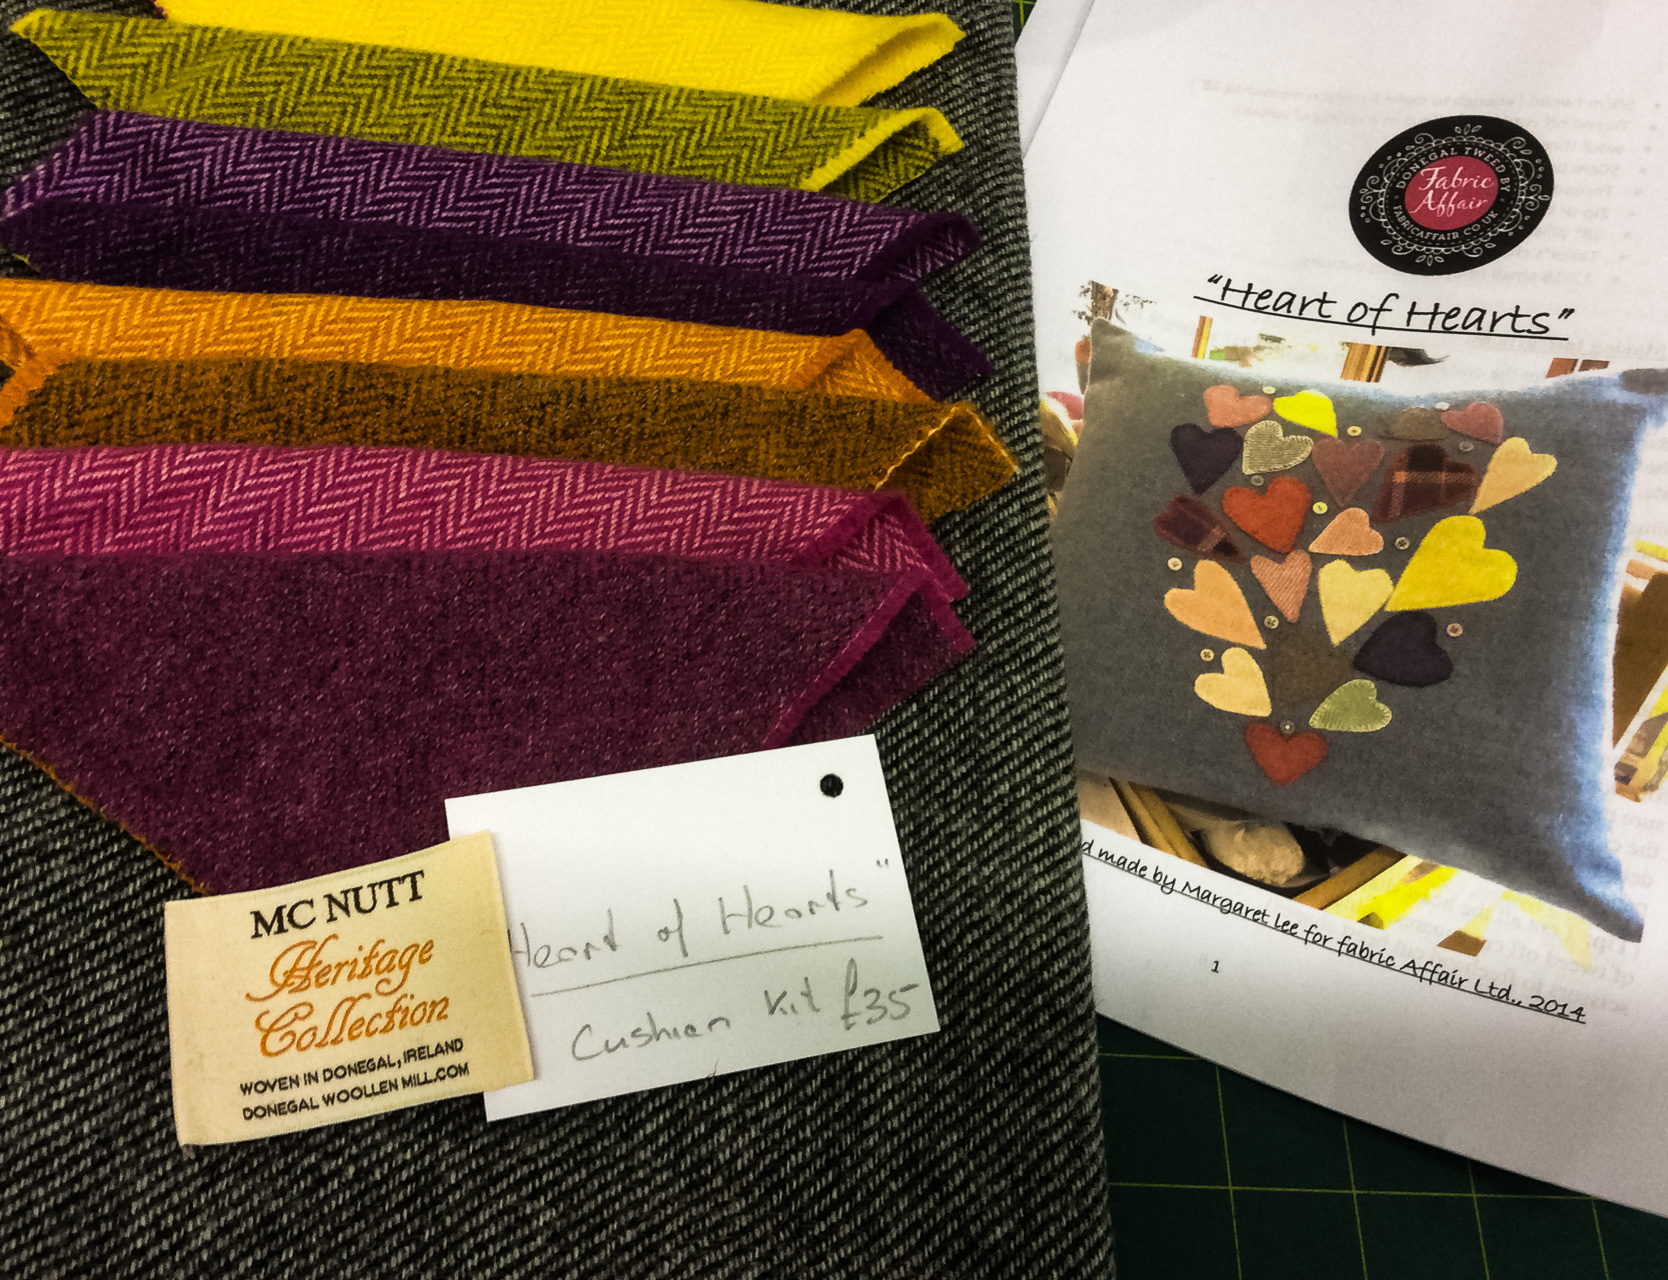 Donegal Tweed by Fabric Affair: Heart of Hearts Cushion Kit.